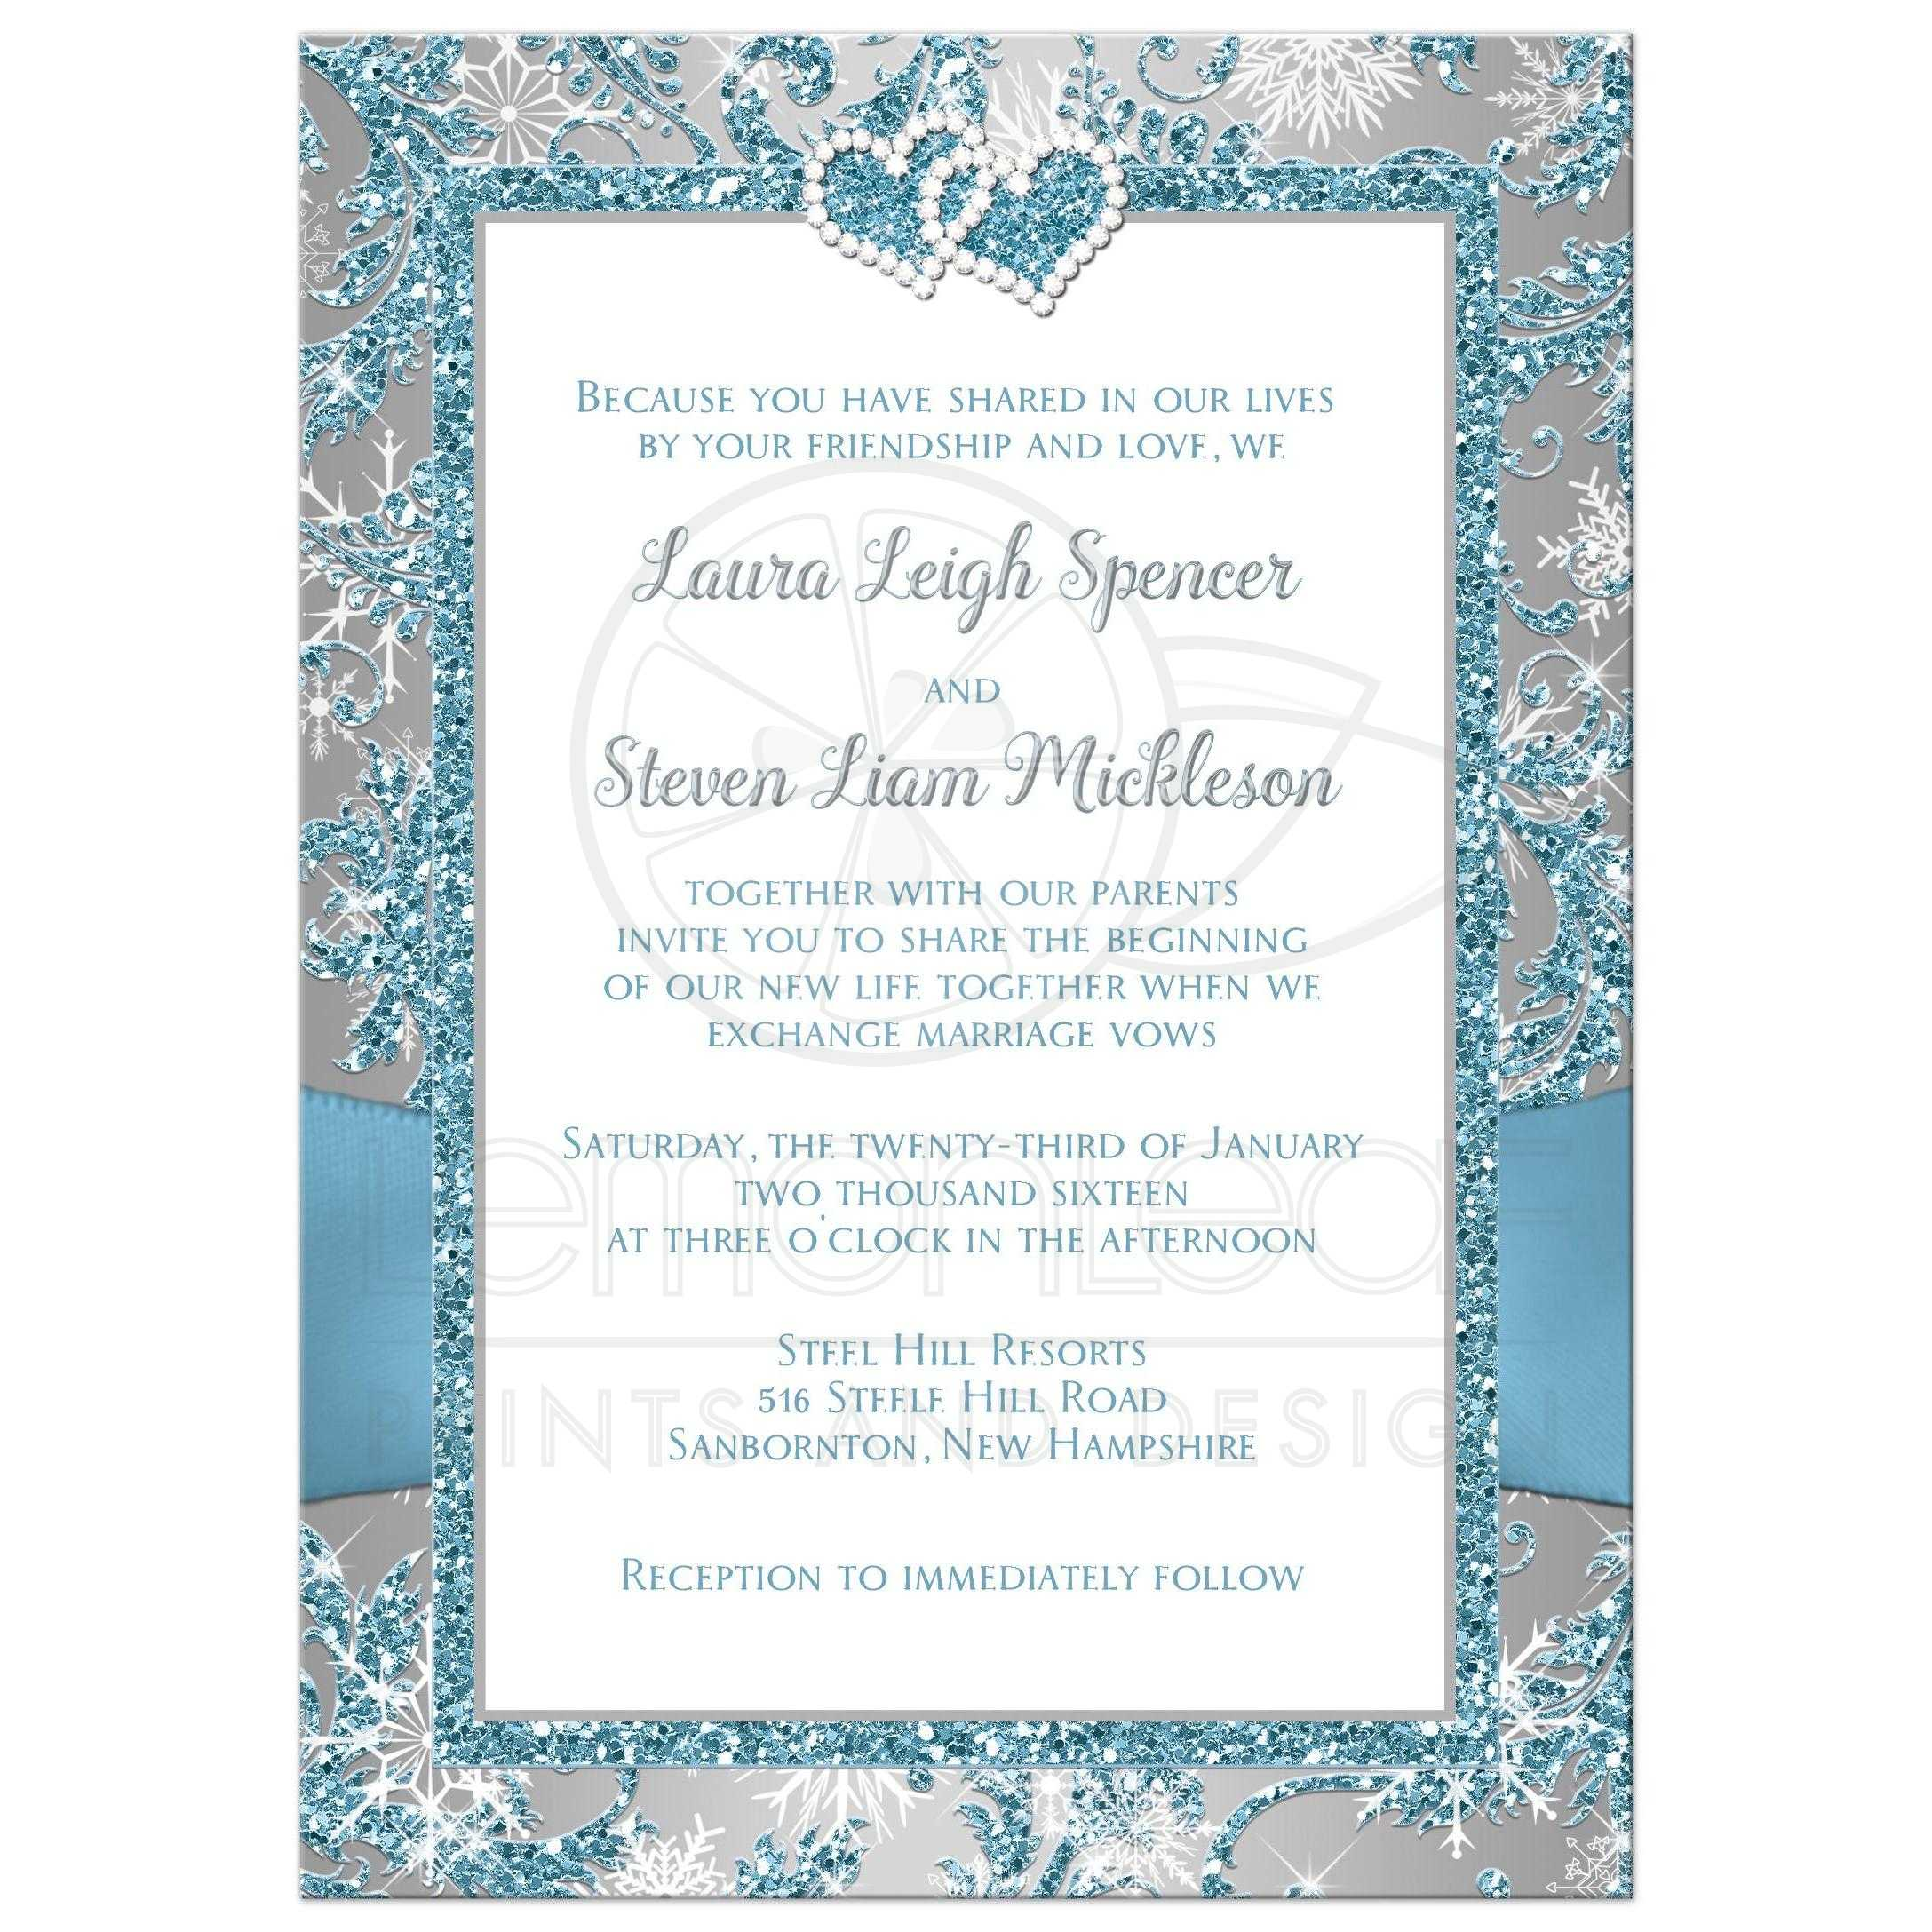 Wedding Invitation | Winter Wonderland | Ice Blue, Silver, White ...